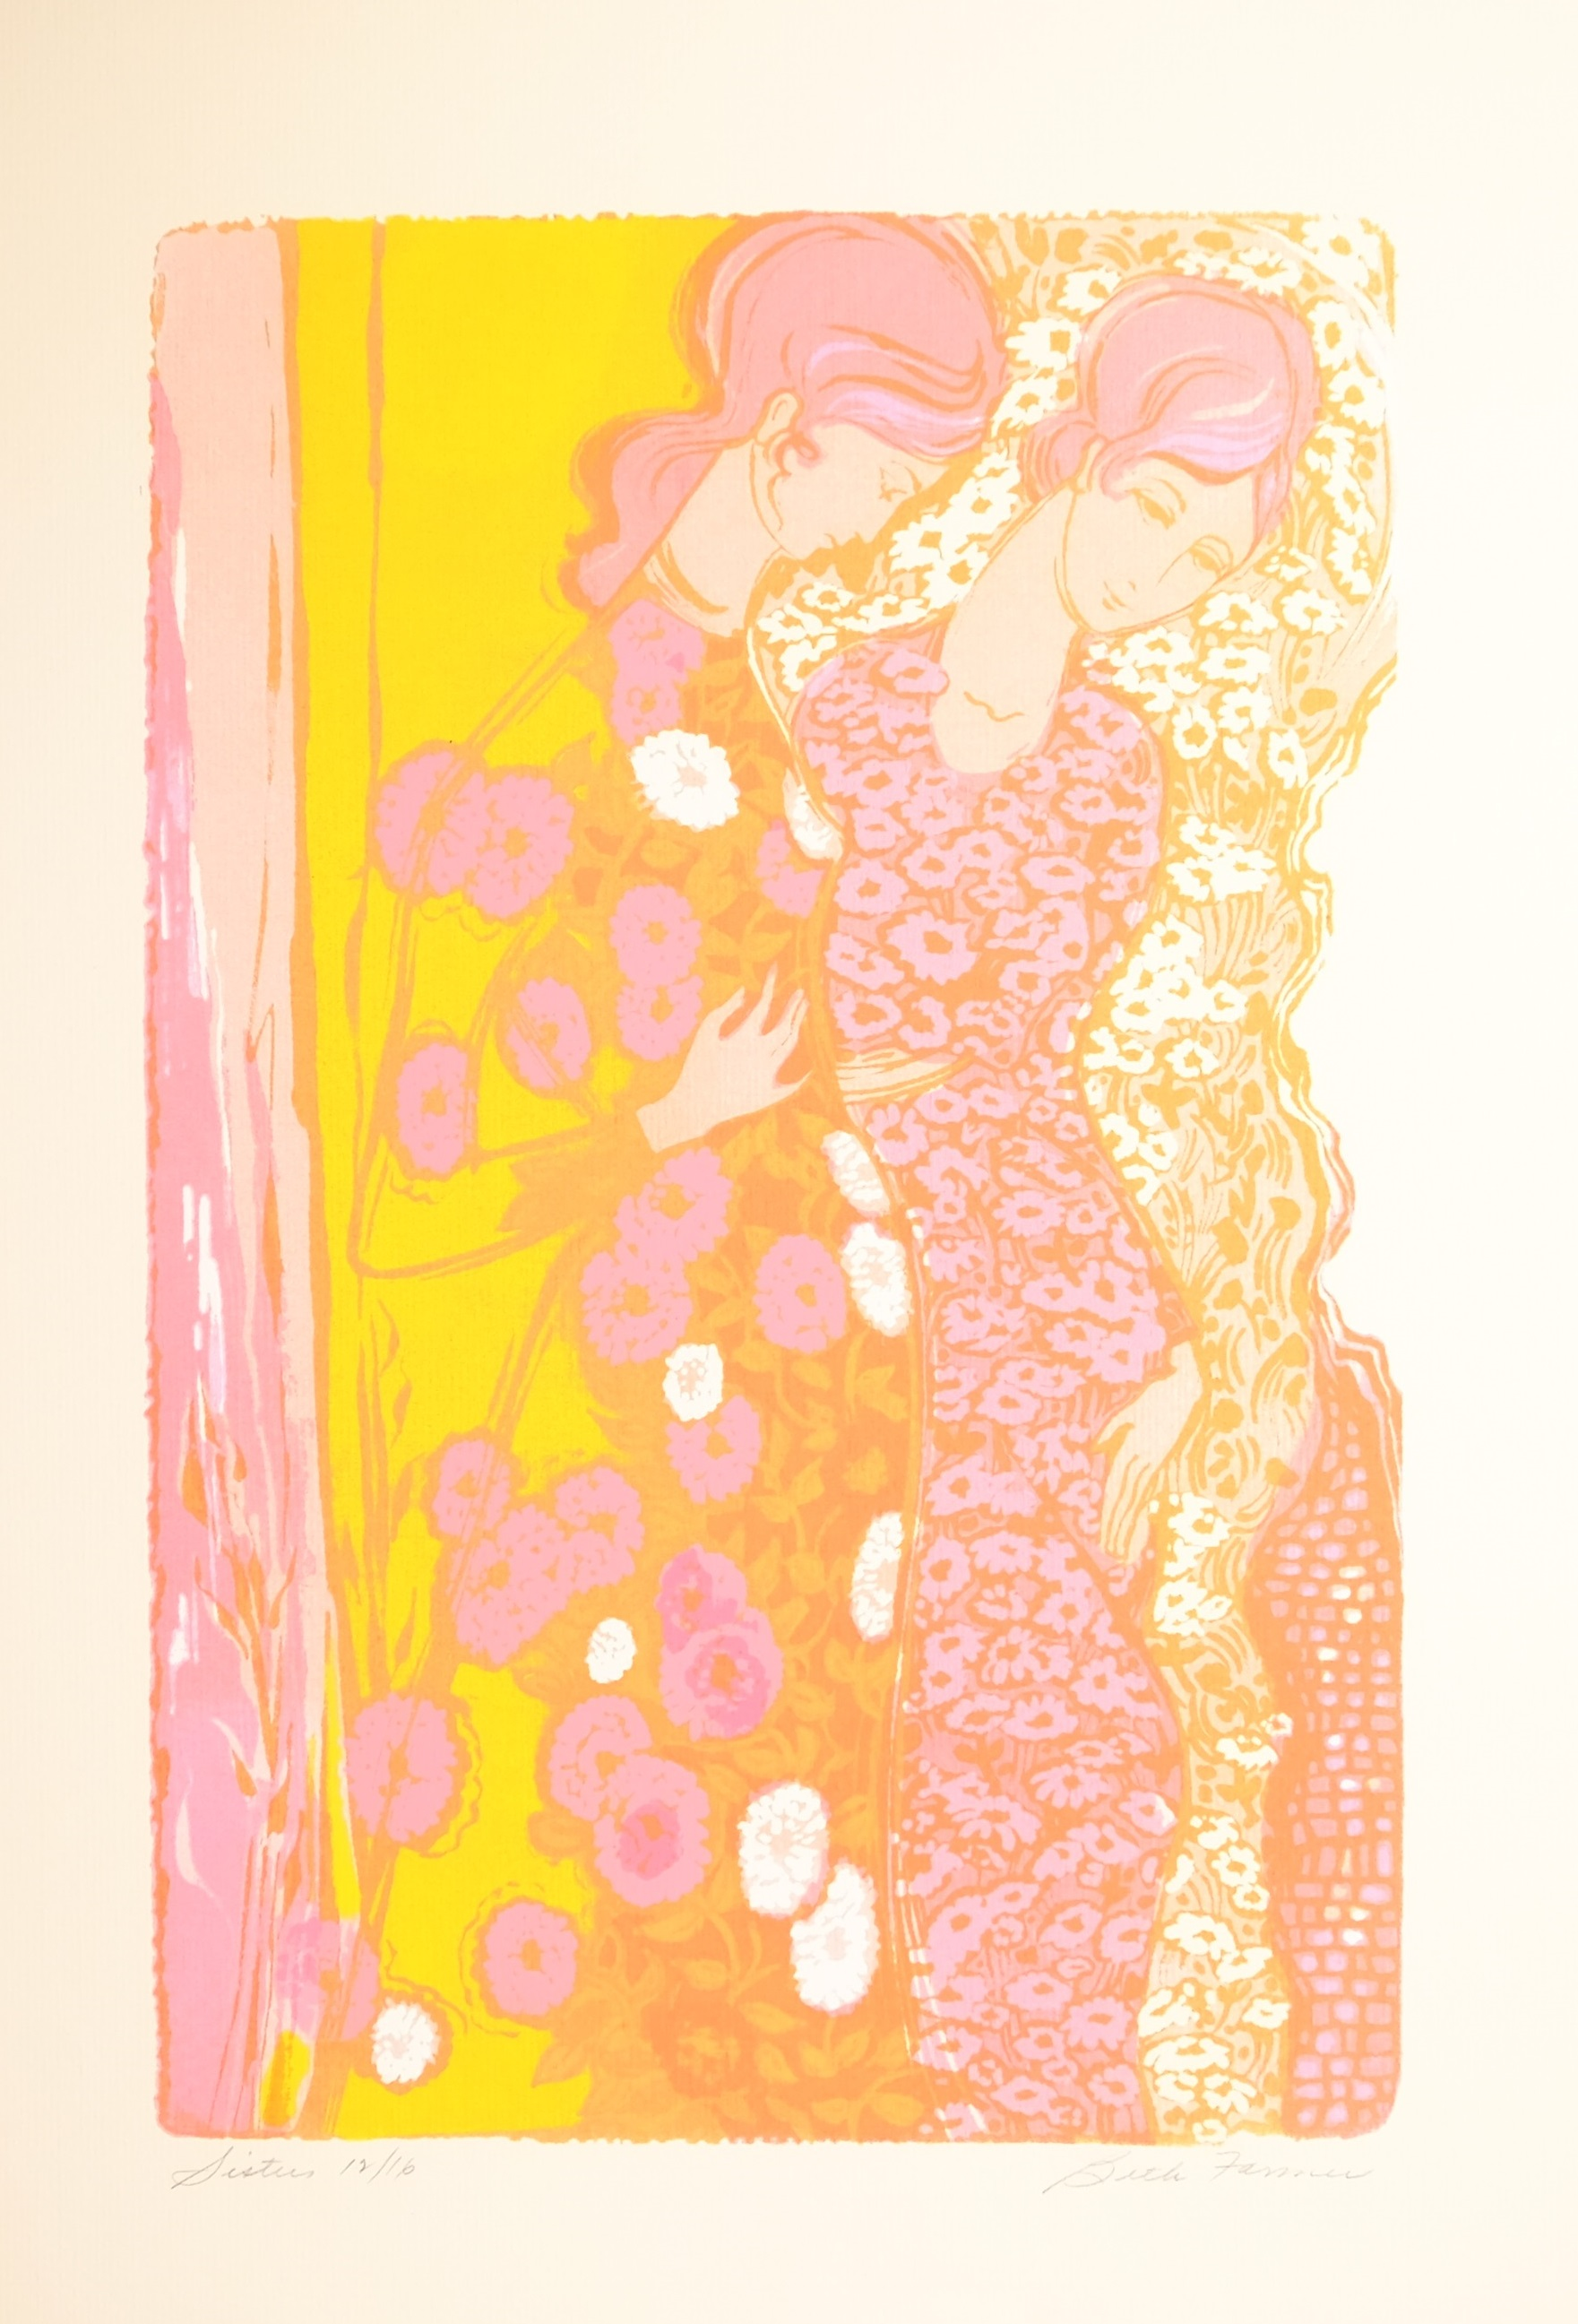 Sisters Yellow/Pink on pink paper, $227